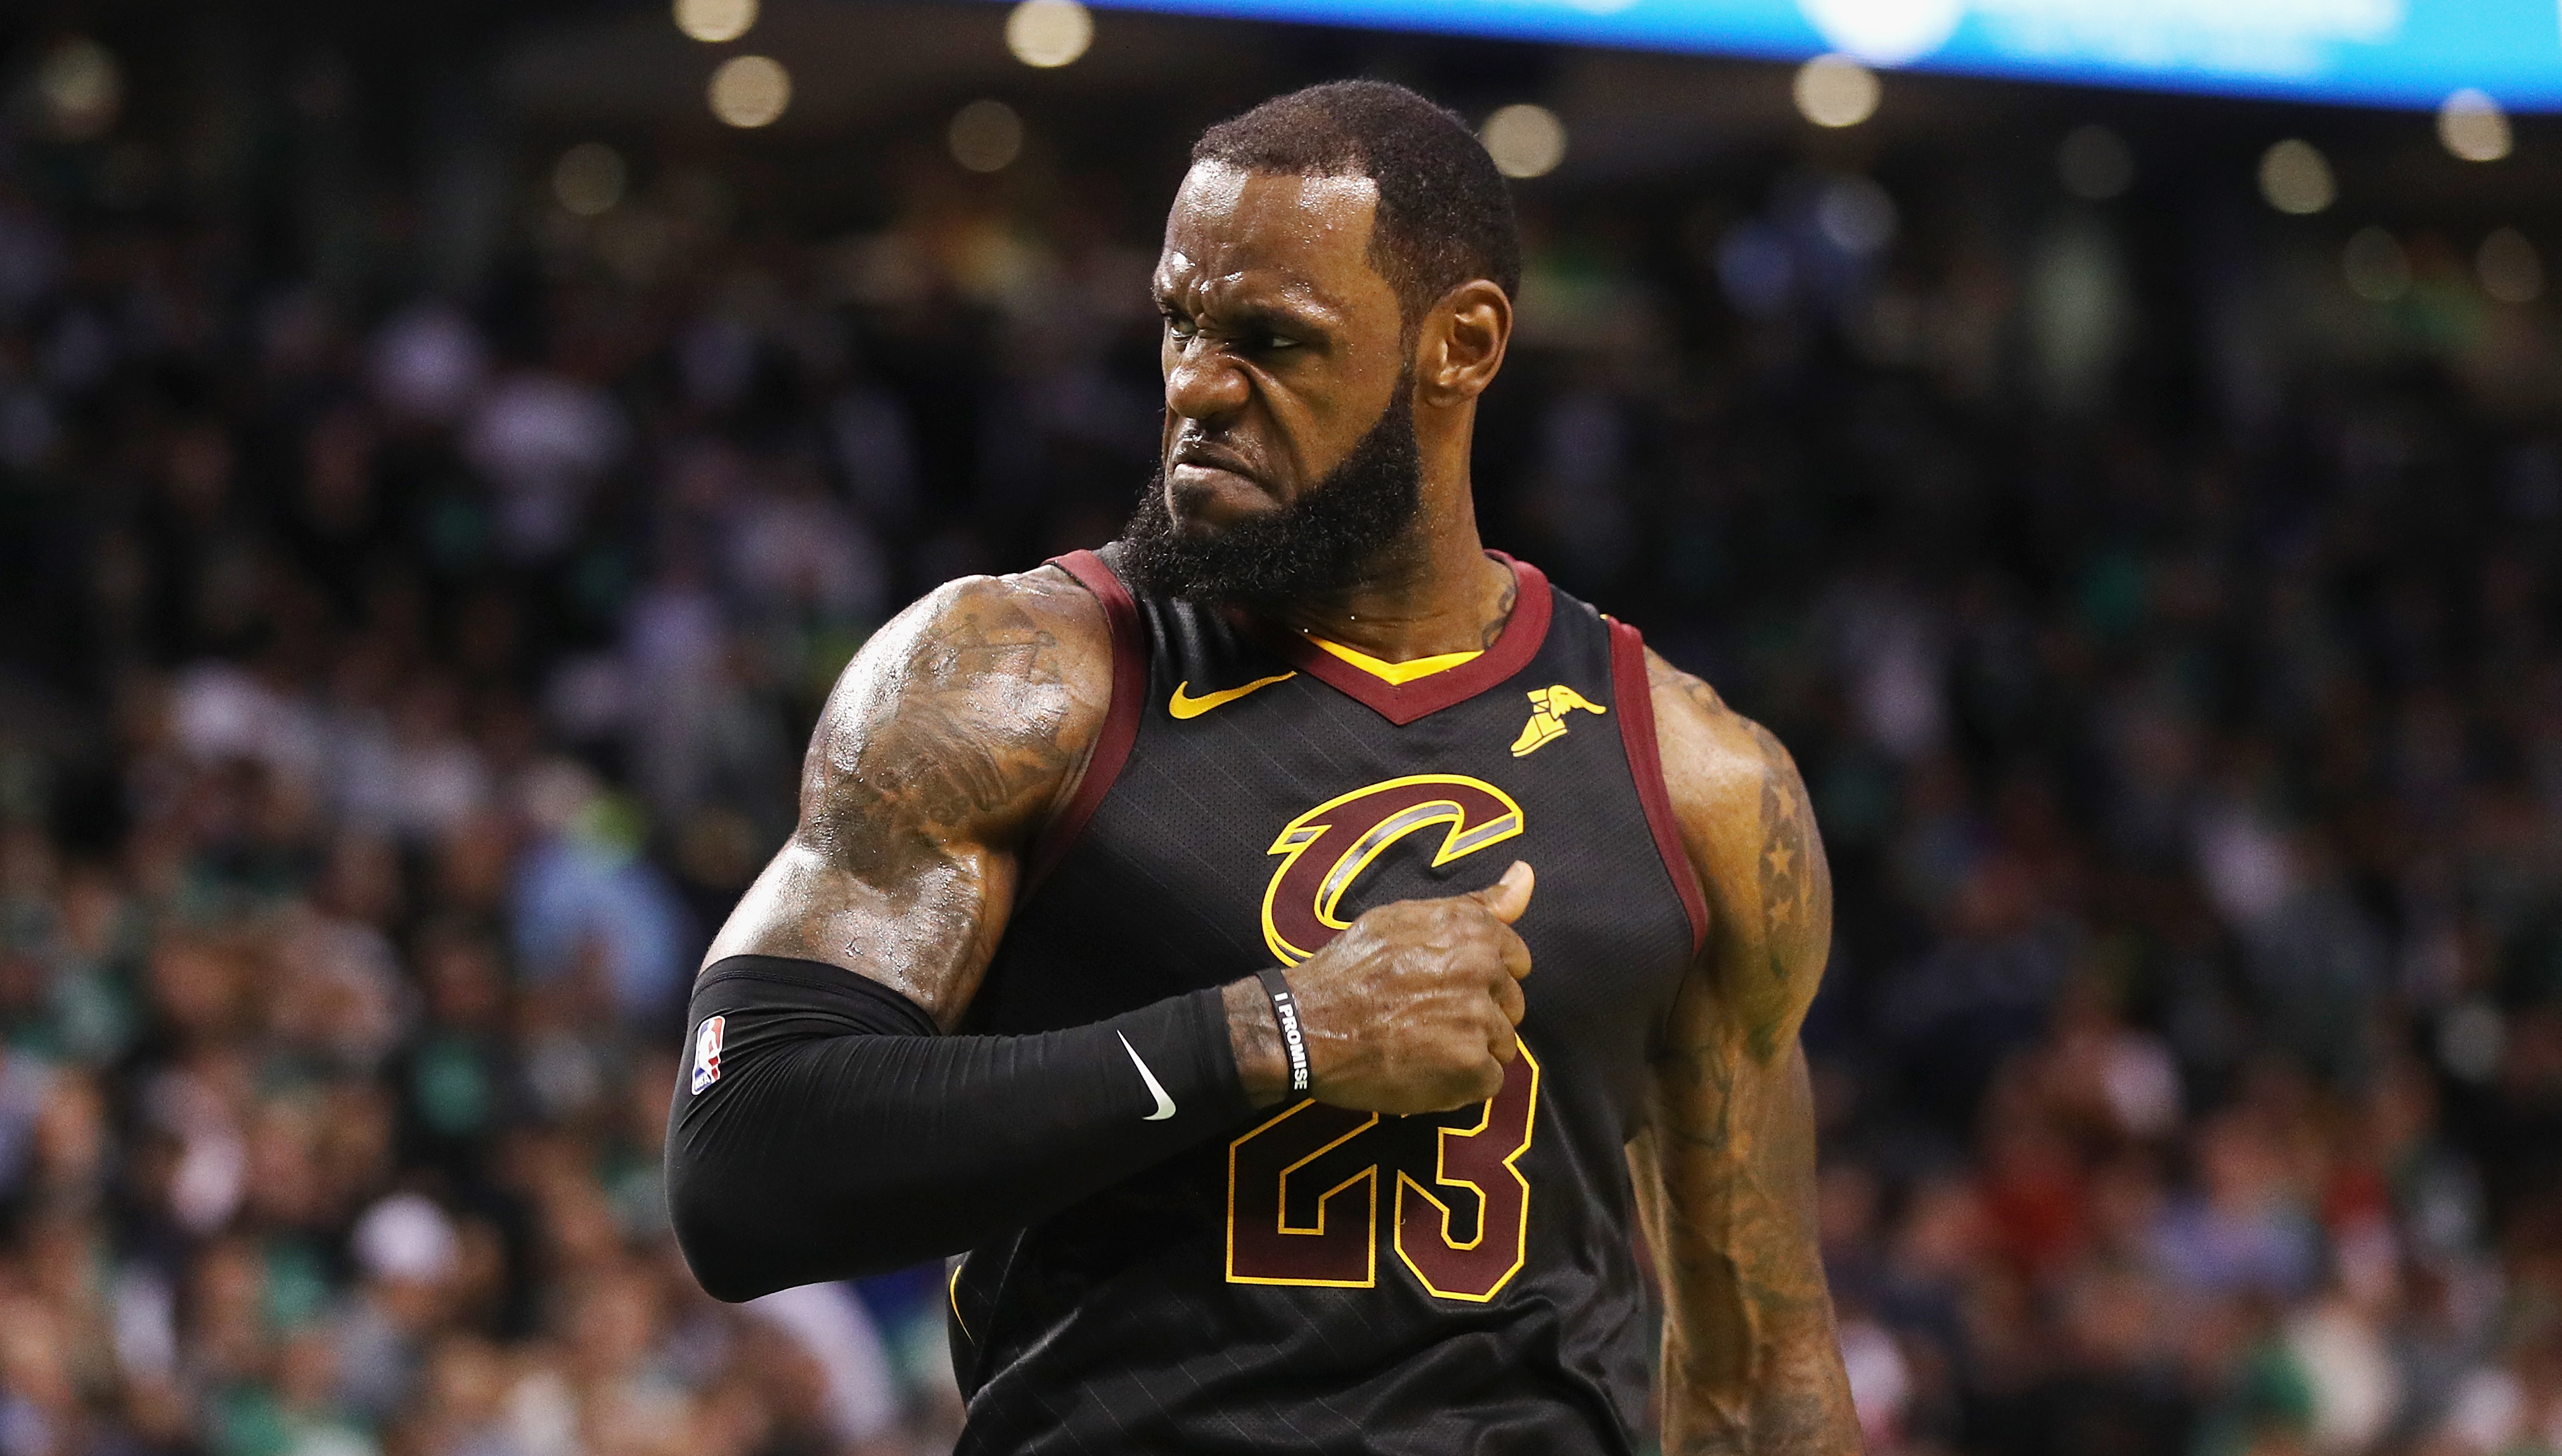 d6f9b3975c6 LeBron James carrying the Cleveland Cavaliers to another NBA Finals  solidifies his unique greatness